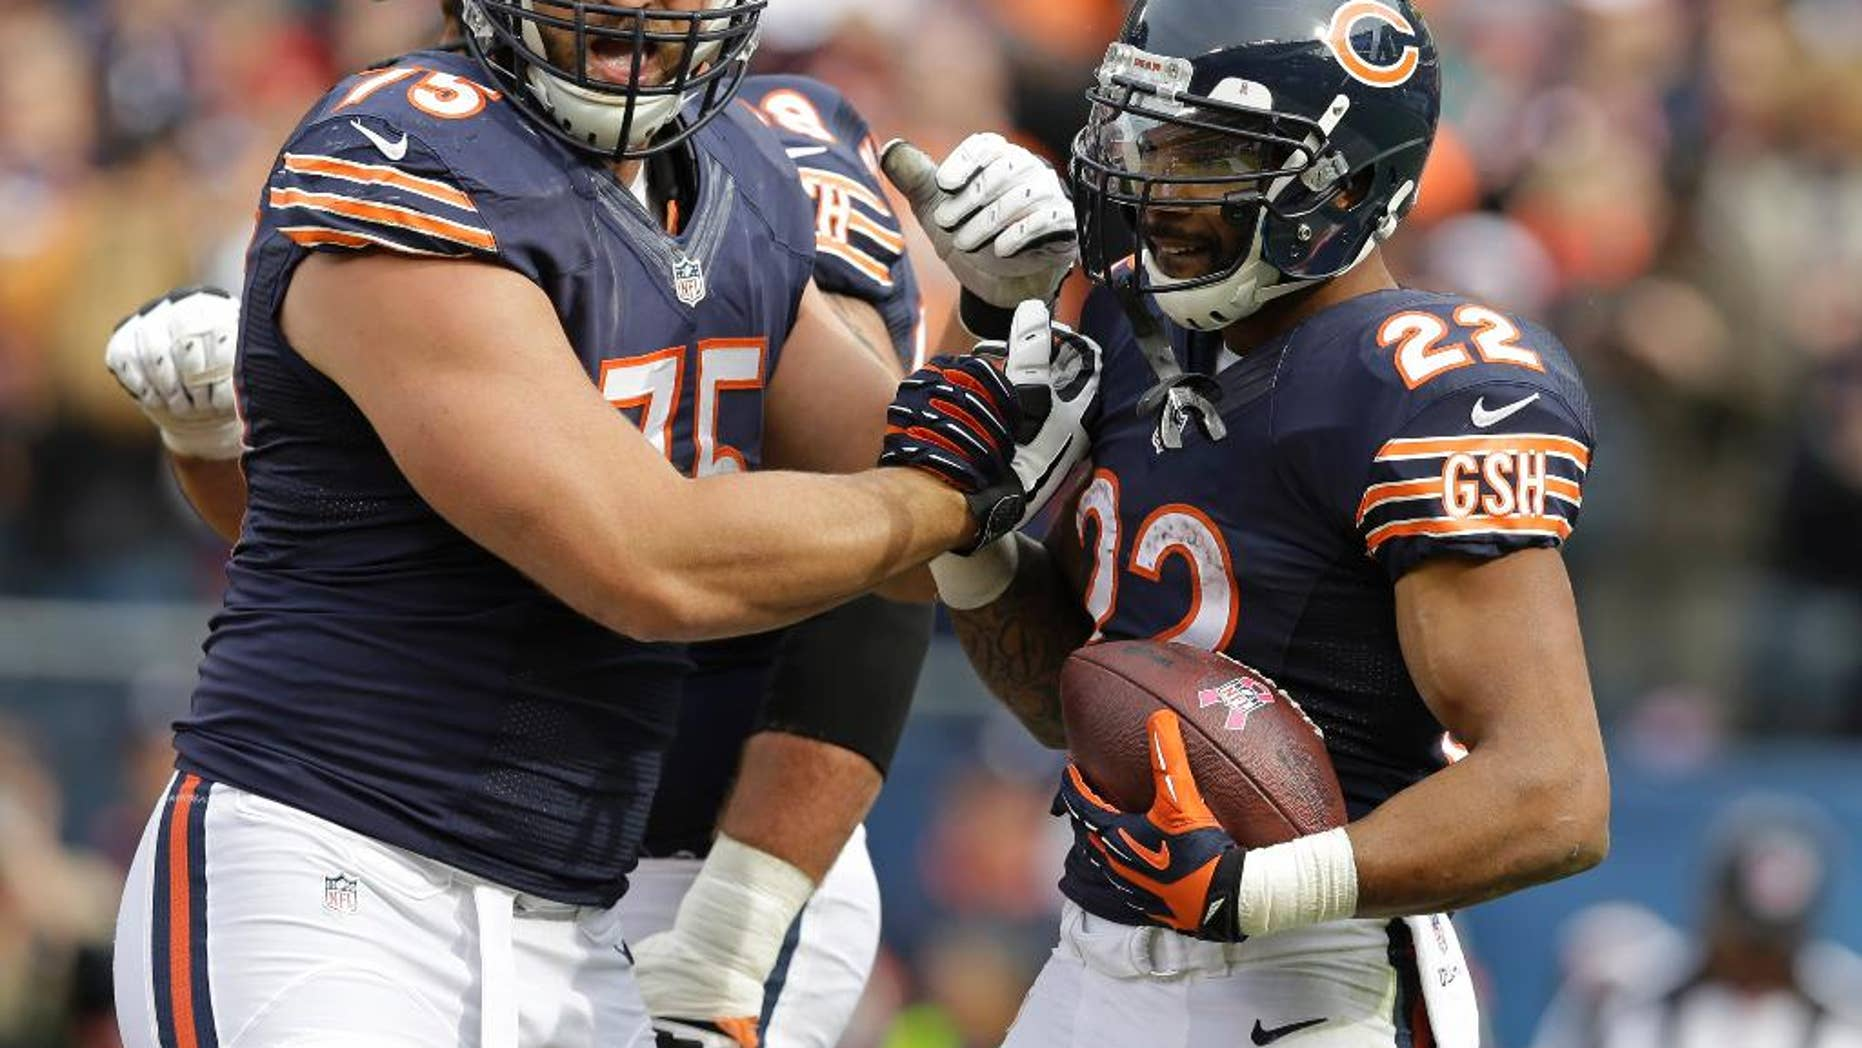 Chicago Bears running back Matt Forte (22) celebrates a touchdown with guard Kyle Long (75) during the second half of an NFL football game against the Miami Dolphins Sunday, Oct. 19, 2014 in Chicago. (AP Photo/Nam Y. Huh)